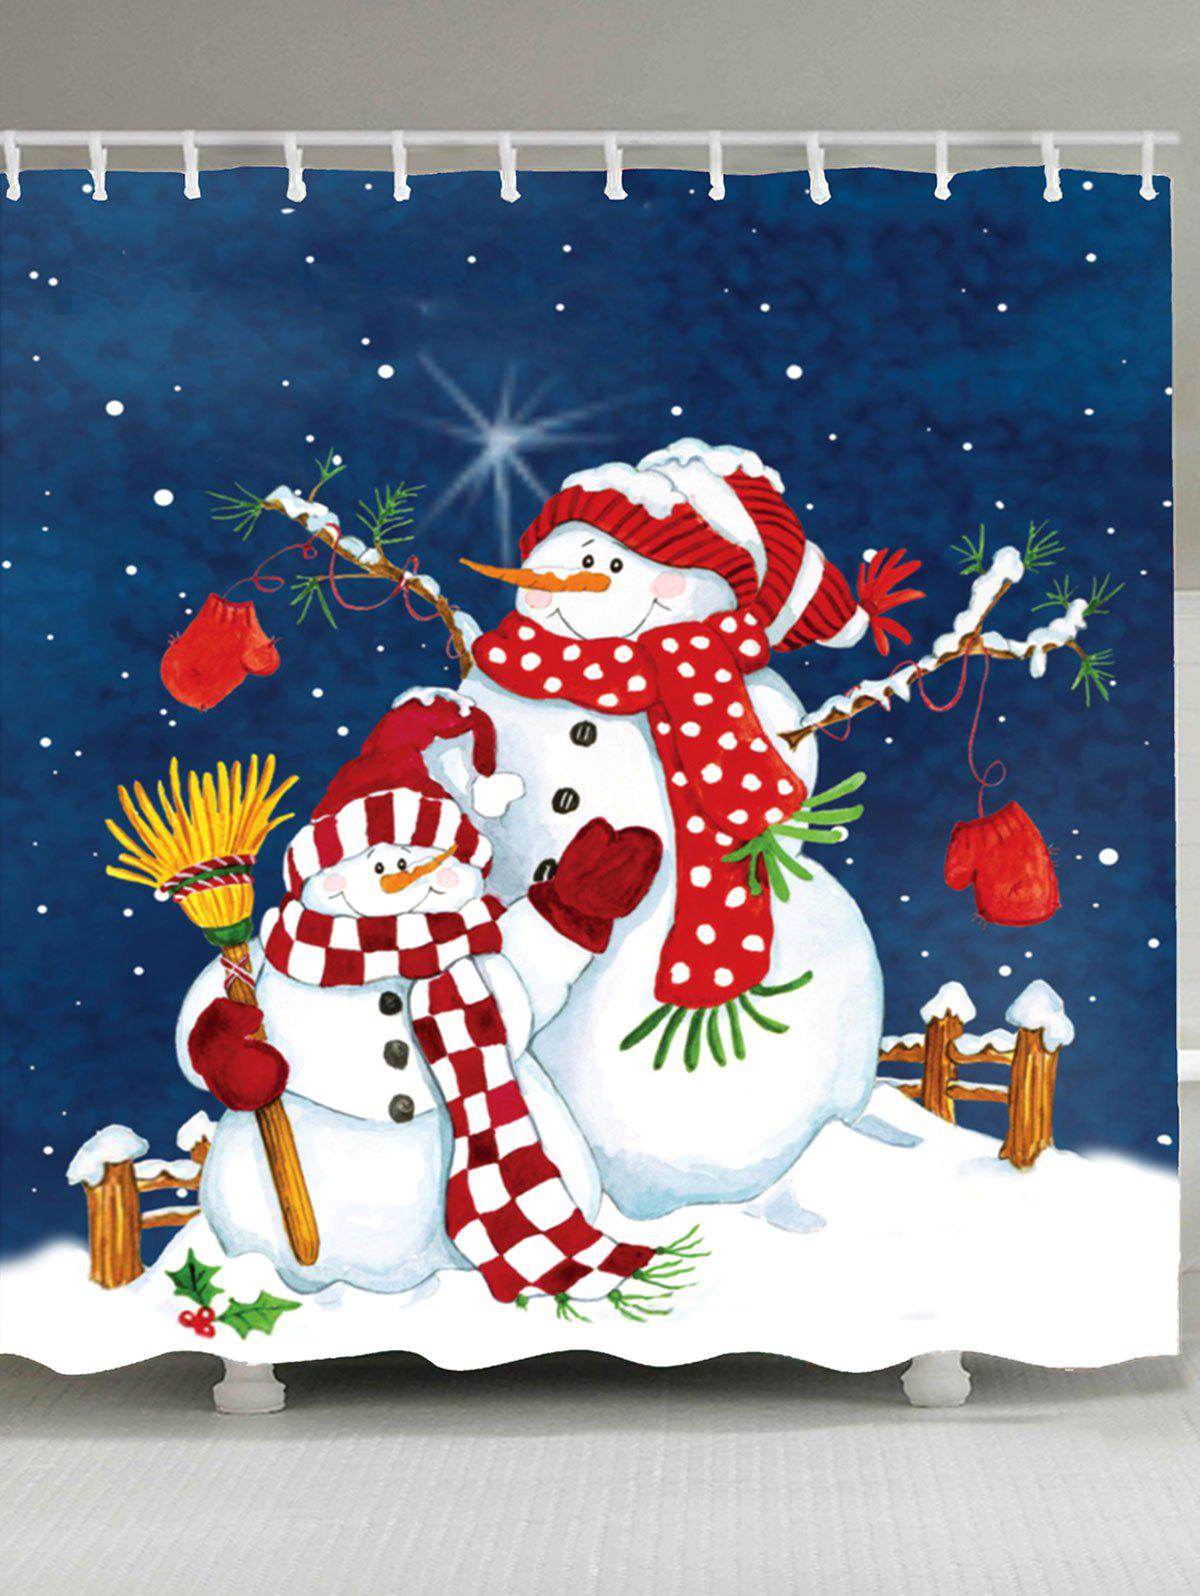 Double Christmas Snowmen Shower CurtainHOME<br><br>Size: W79 INCH * L71 INCH; Color: COLORFUL; Products Type: Shower Curtains; Materials: Polyester; Pattern: Print,Snowflake; Style: Festival; Size: 150 x 180(CM); Number of Hook Holes: W59 inch * L71 inch:10, W65 inch * L71 inch:12, W71 inch * L71 inch:12, W71 inch * L79 inch:12, W79 inch * L71 inch:12; Package Contents: 1 x Shower Curtain 1 x Hooks (Set);